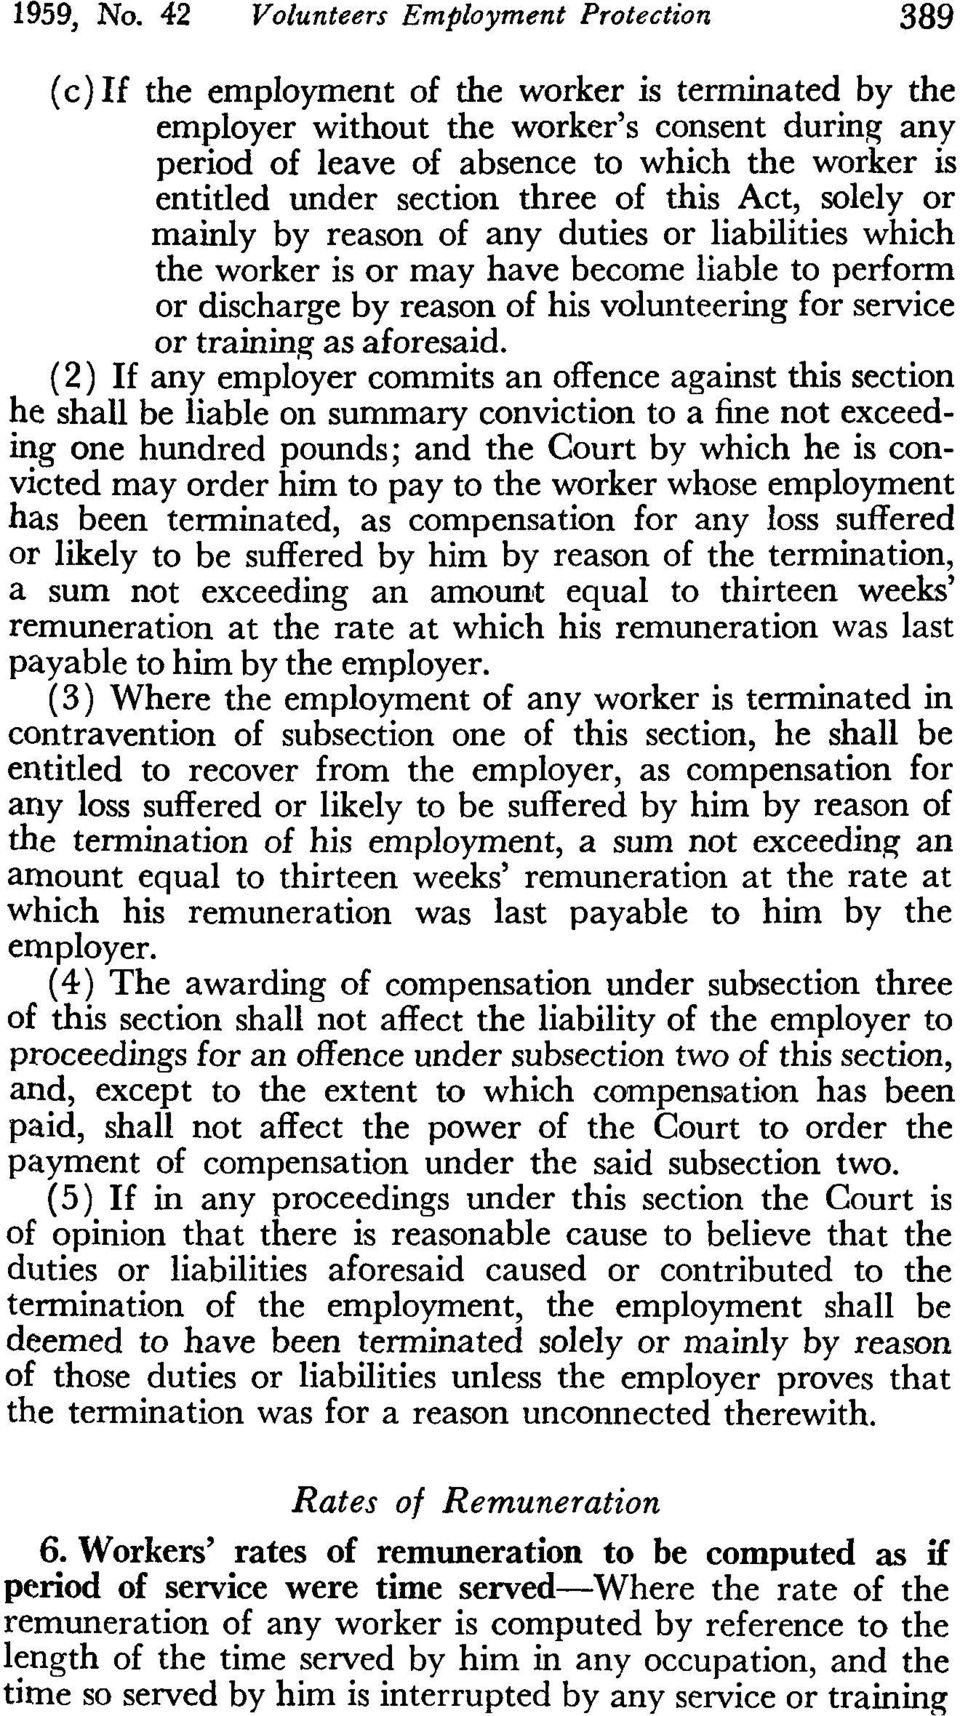 entitled under section three of this Act, solely or mainly by reason of any duties or liabilities which the worker is or may have become liable to perform or discharge by reason of his volunteering